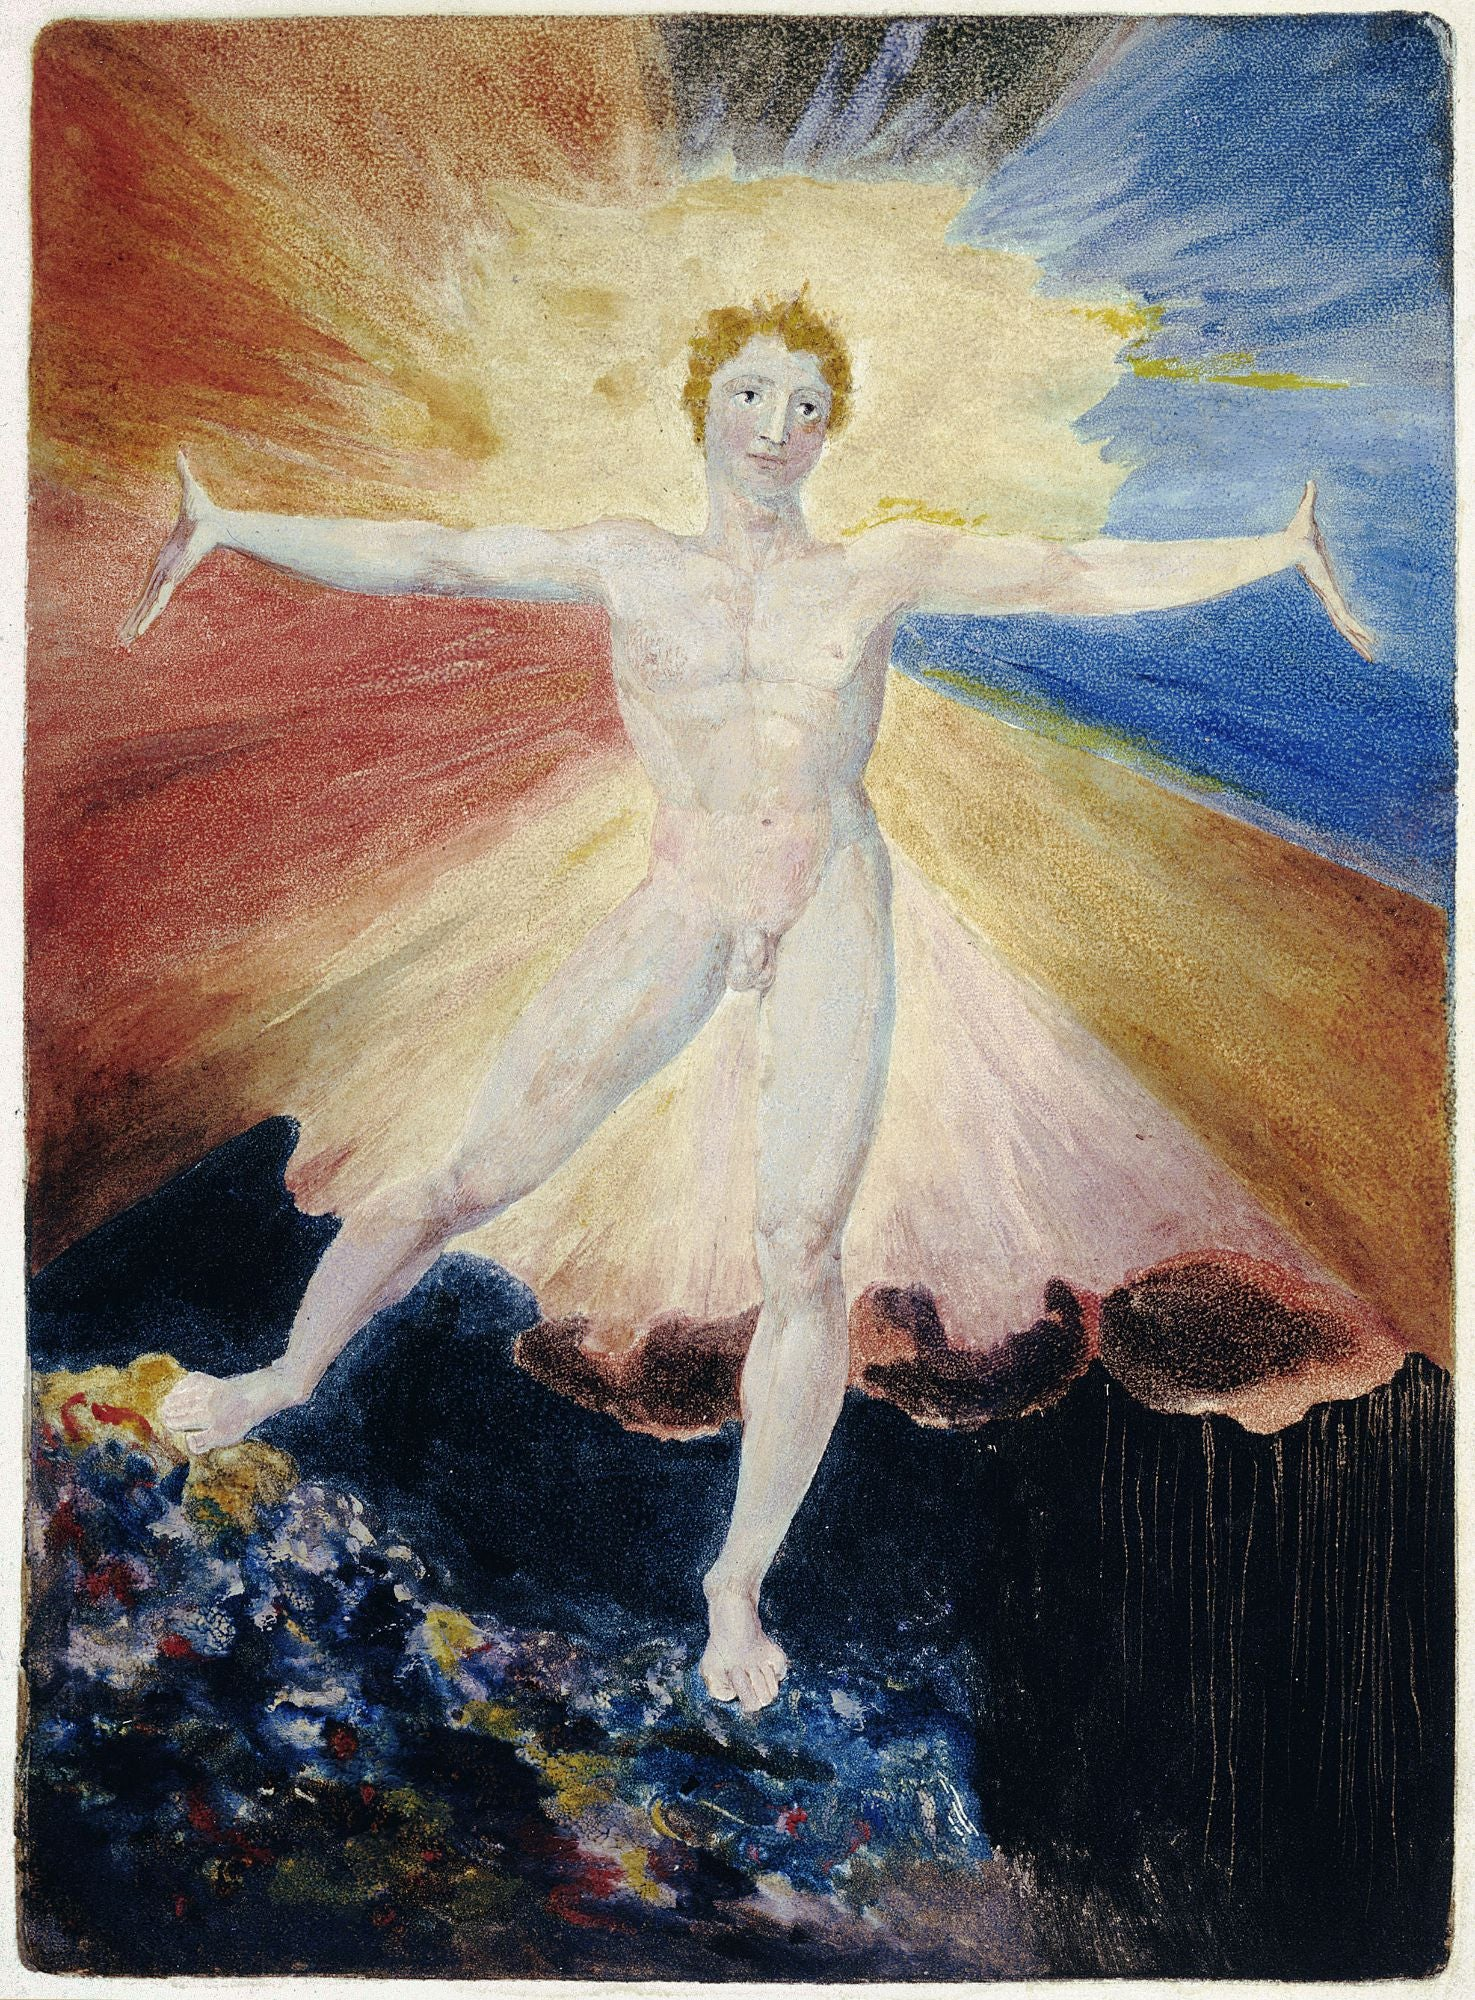 William Blake | Buy Posters, Frames, Canvas, Digital Art & Large Size Prints Of The Famous Old Master's Artworks